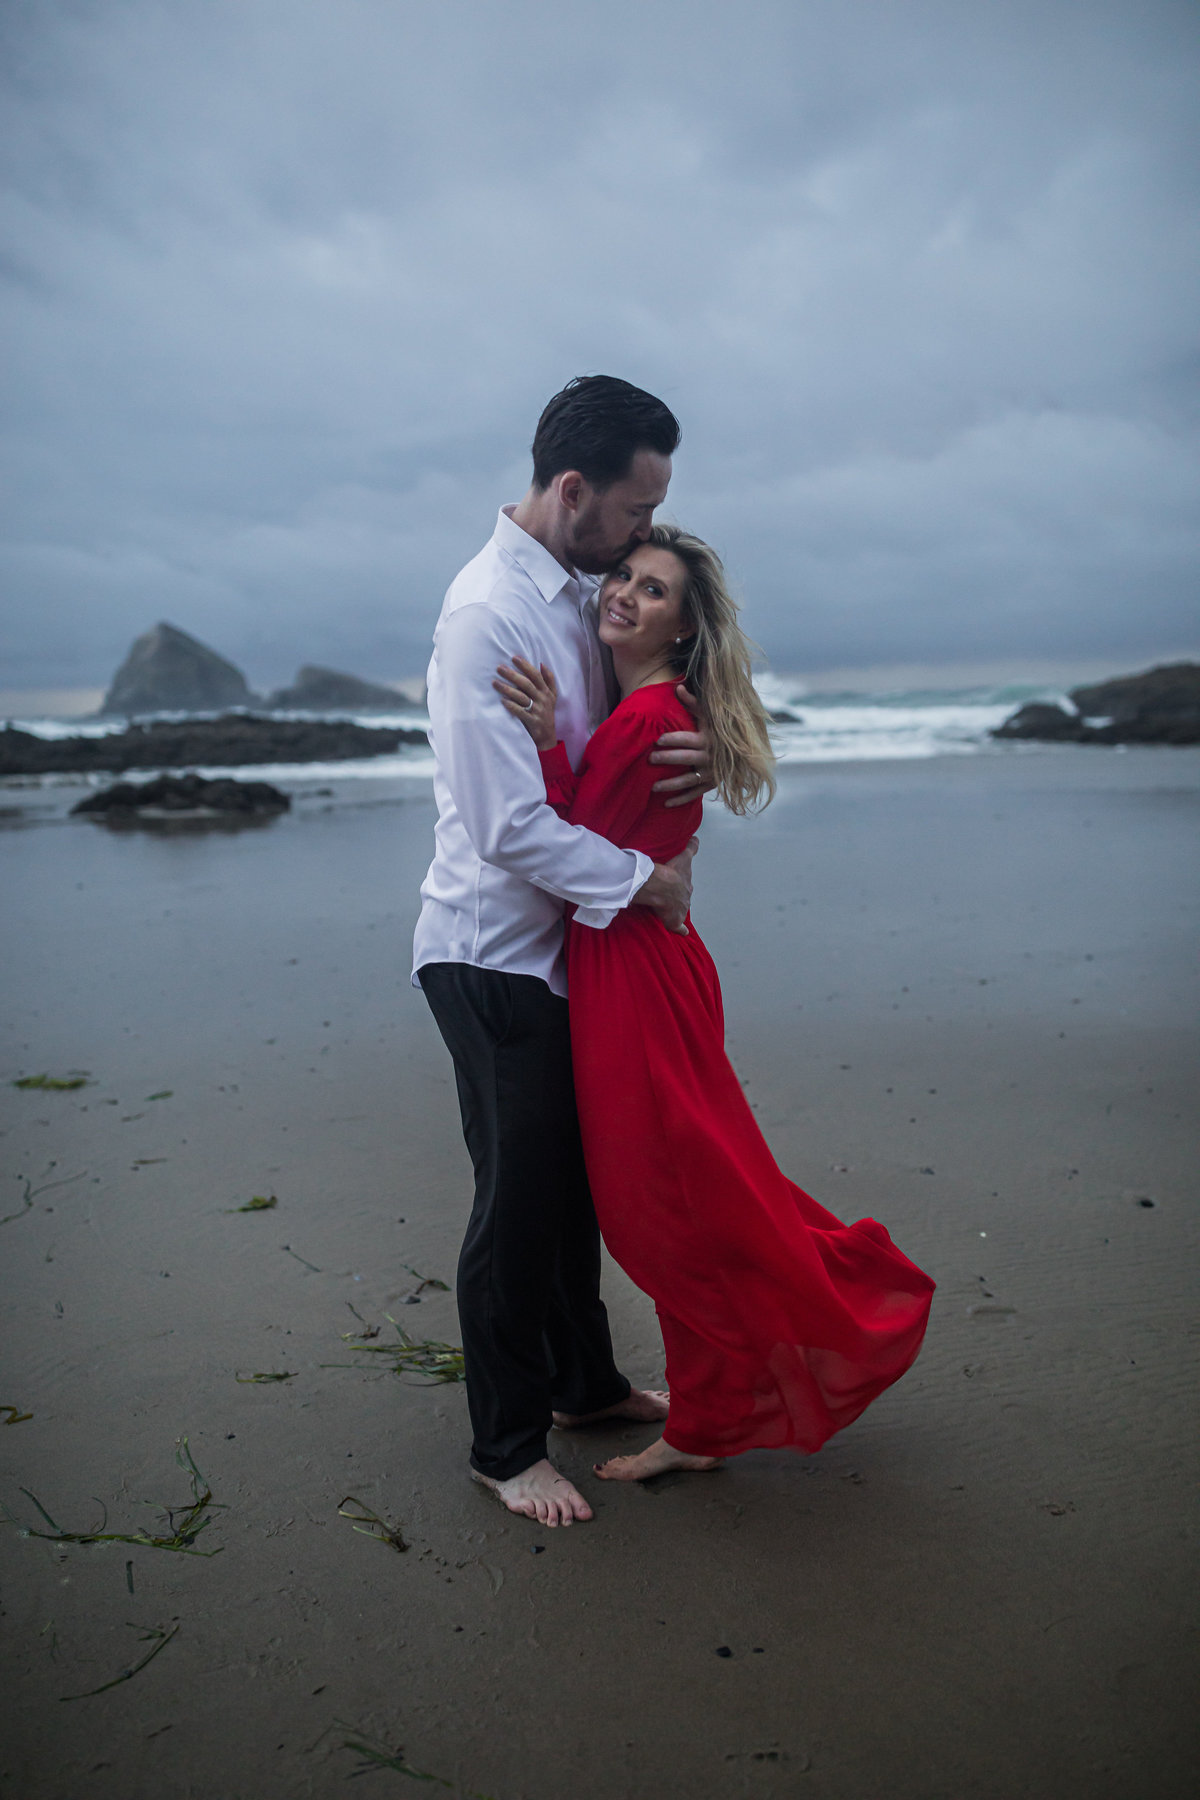 Oregon-oceanside-elopement-couples-photography-session-beach_(25_of_27)